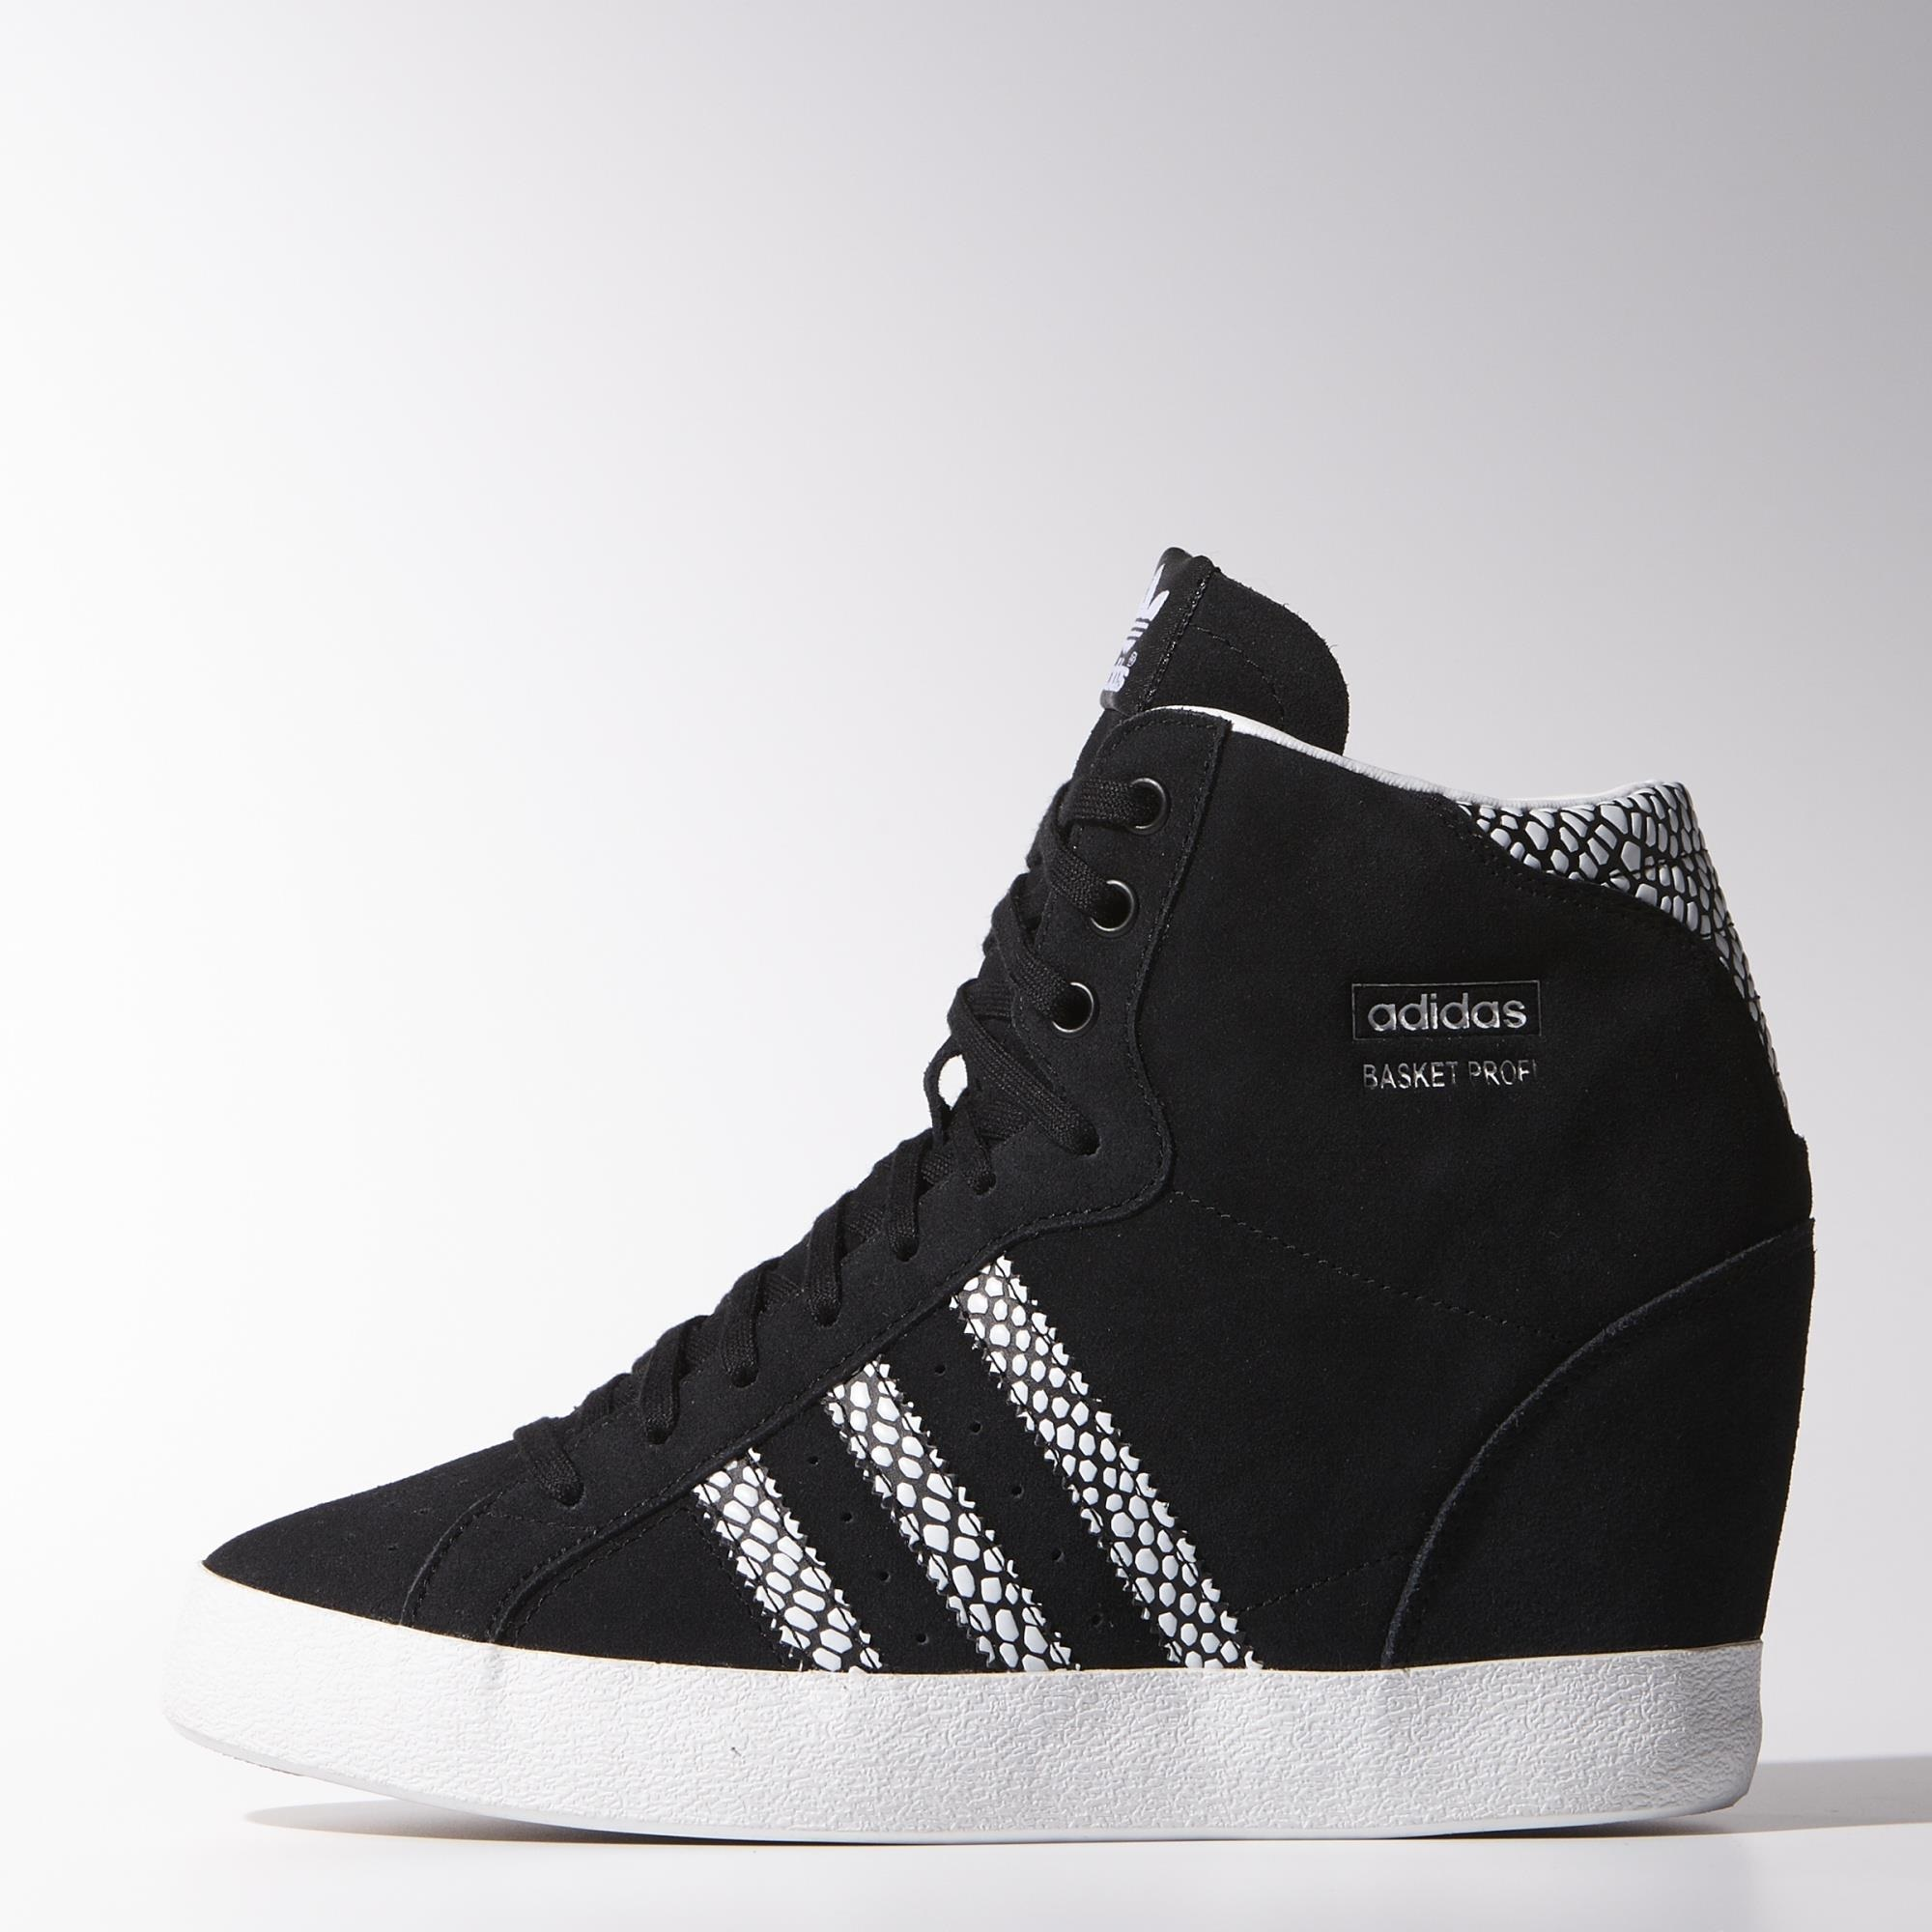 Chaussures Chaussures Adidas Homme Adidas Compensées rCxdtQsh